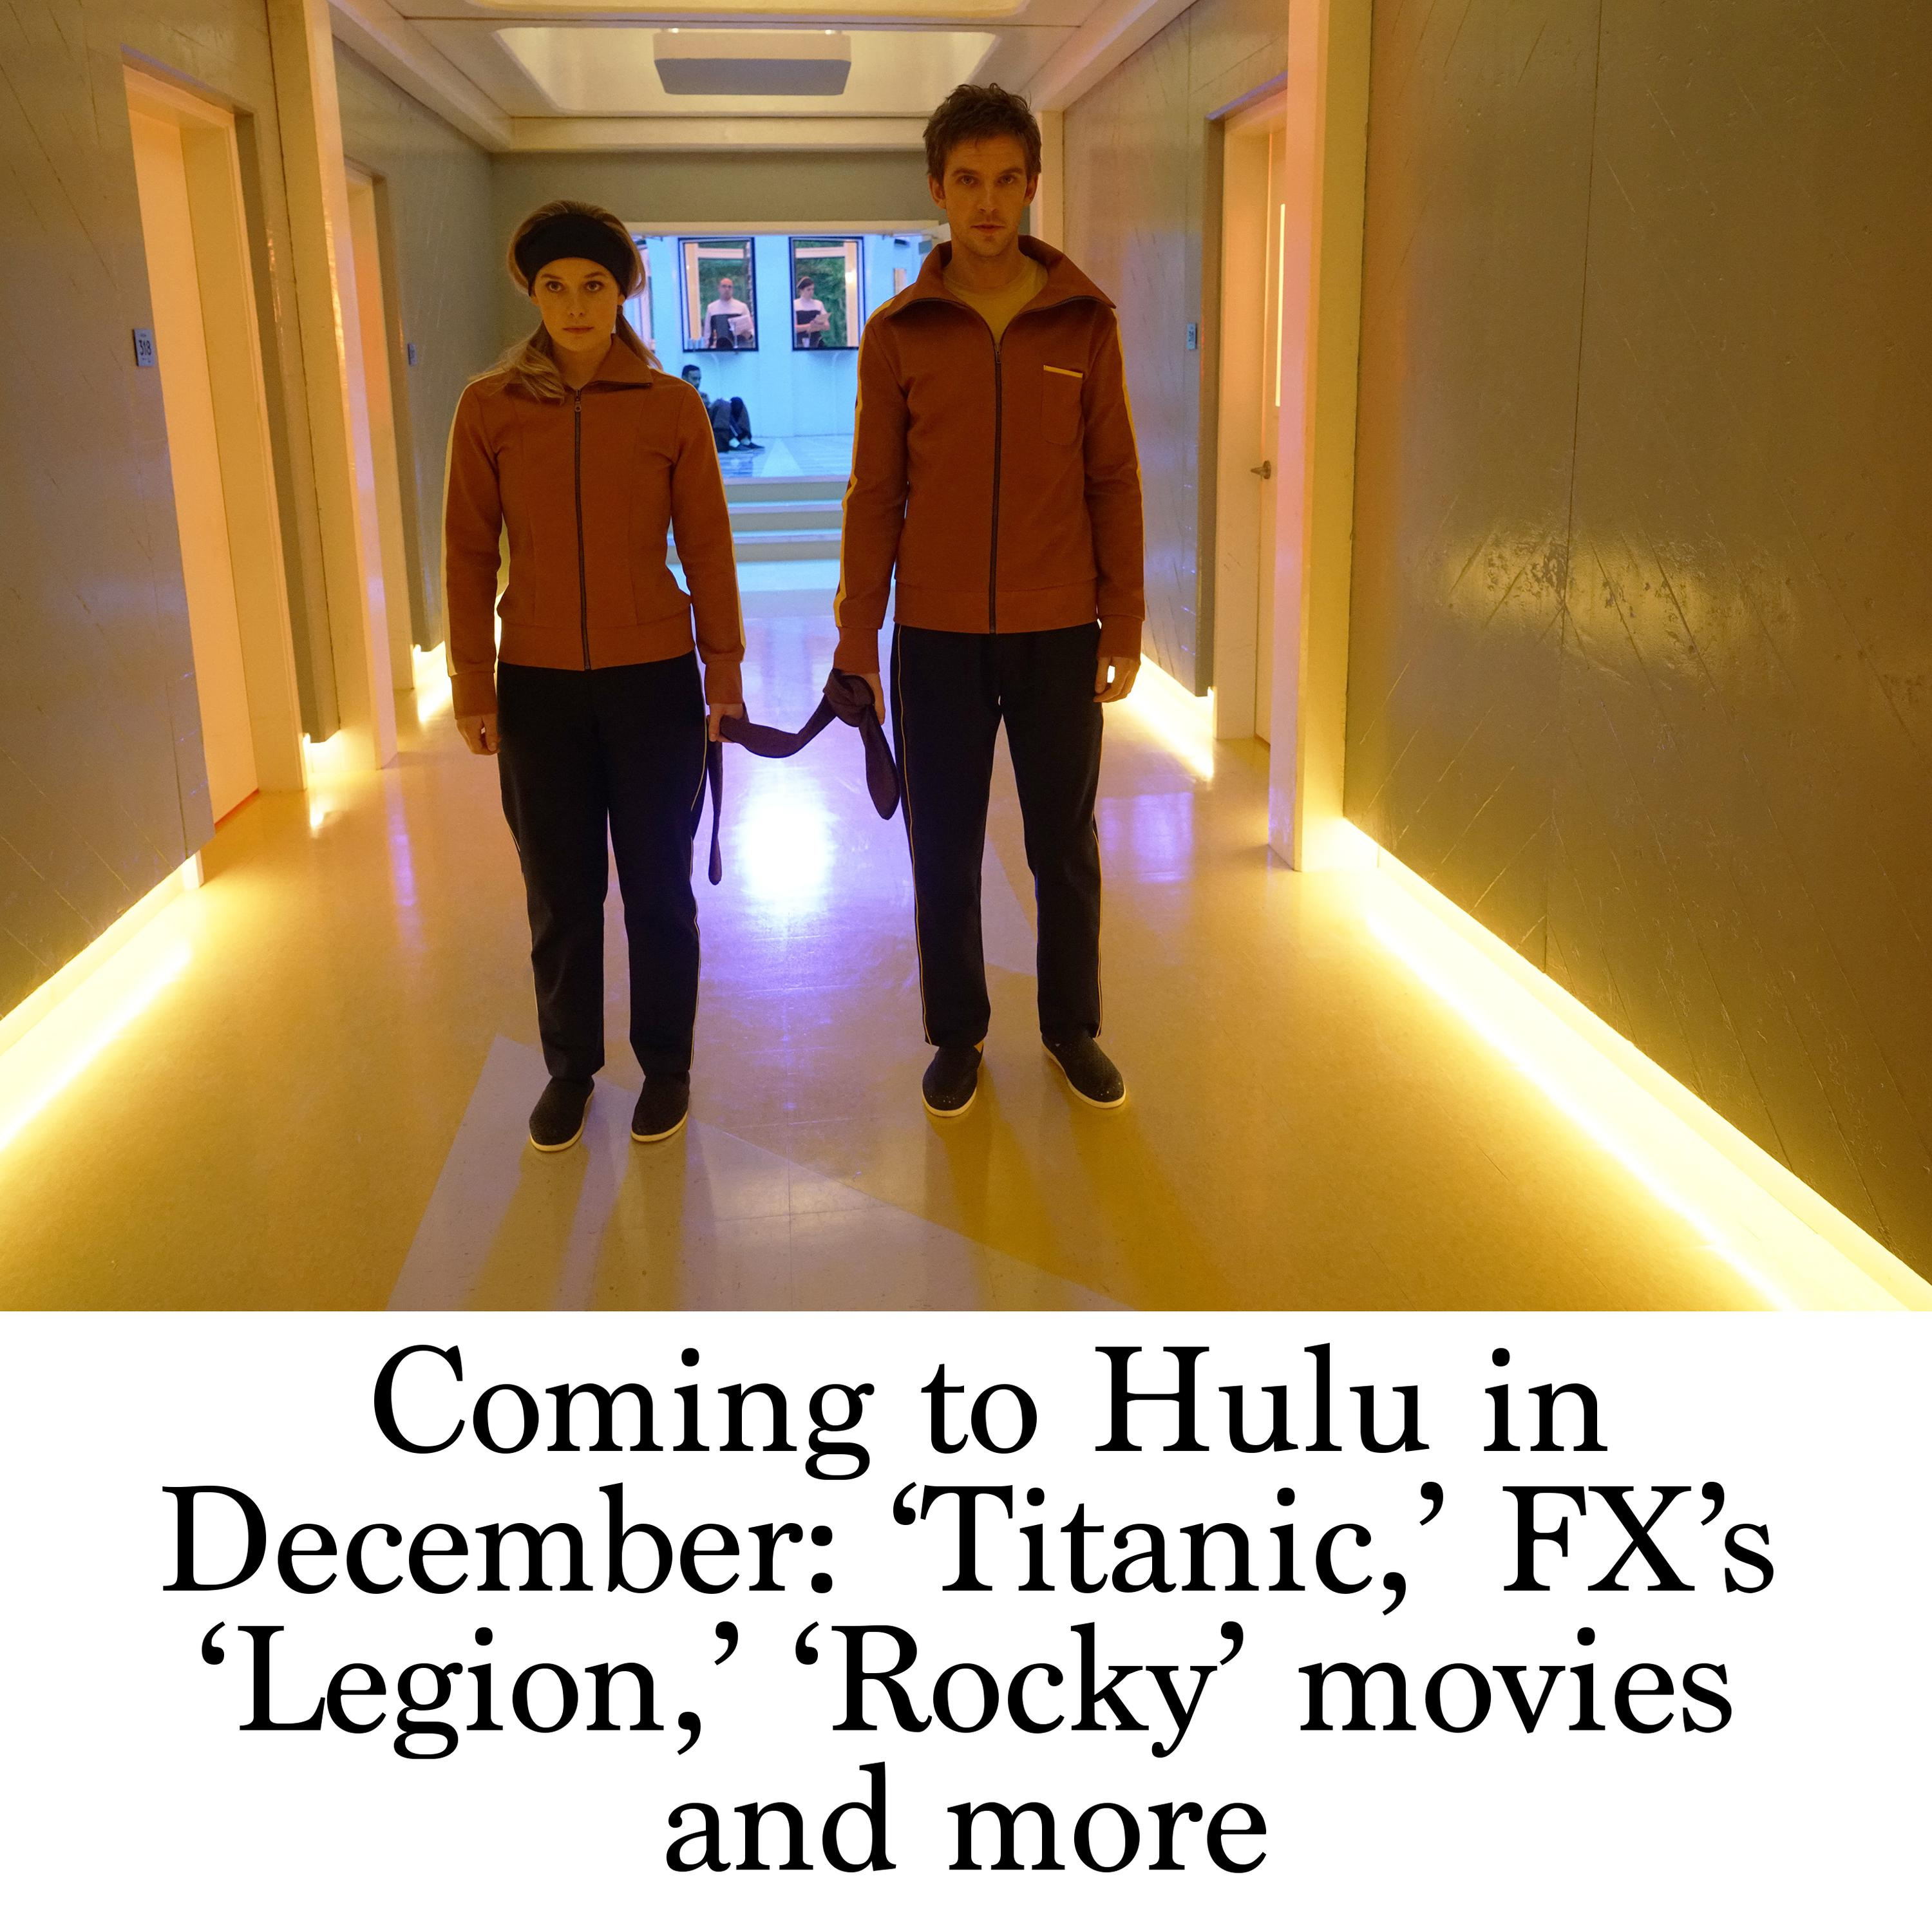 Coming to Hulu in December: 'Titanic,' FX's 'Legion,' 'Rocky